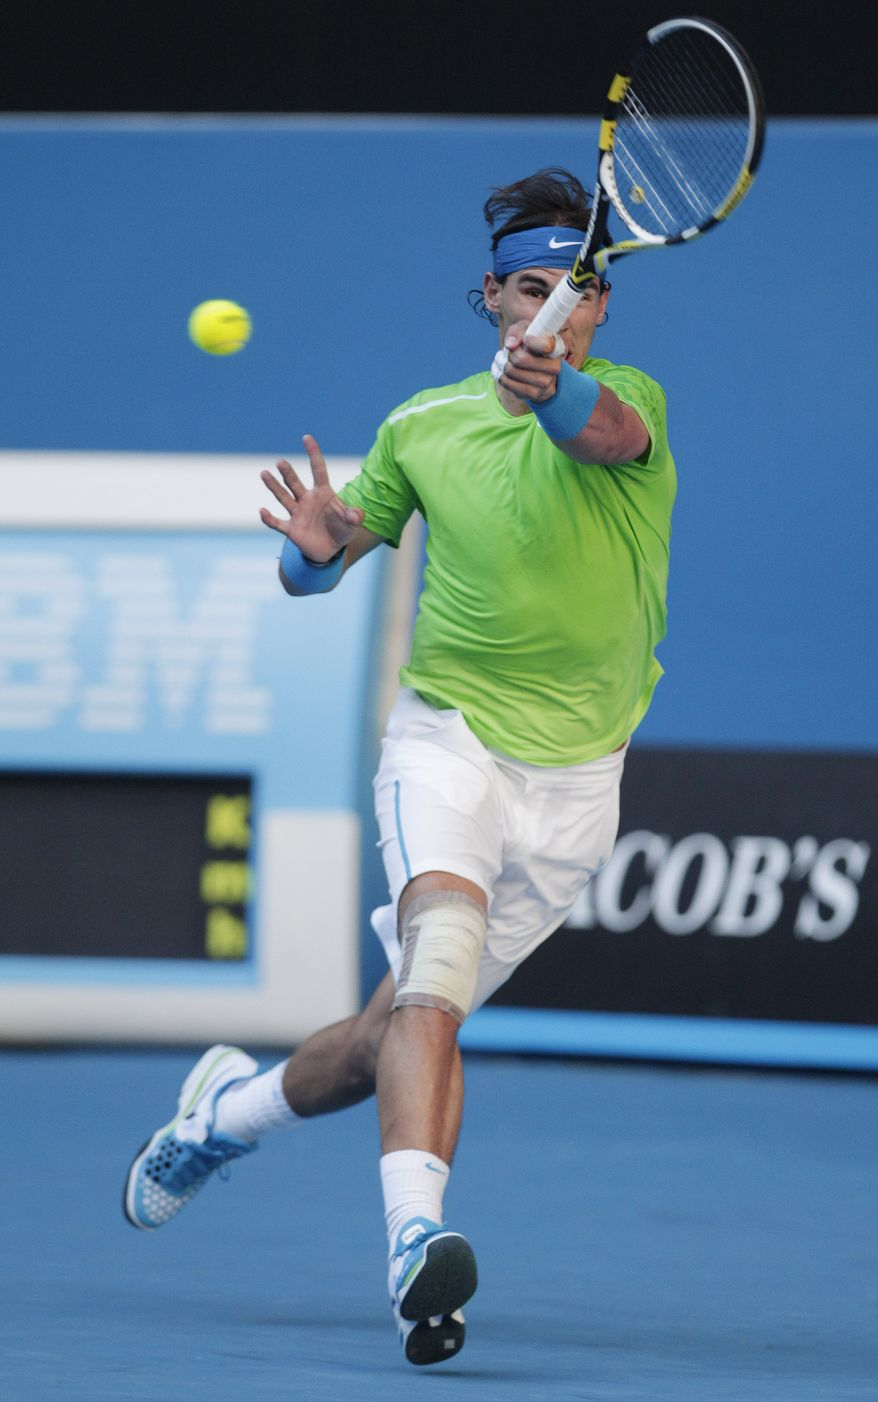 Rafael Nadal makes a forehand return to Alex Kuznetsov during their first-round match Jan. 16, 2012, at the Australian Open in Melbourne, Australia. (Associated Press)